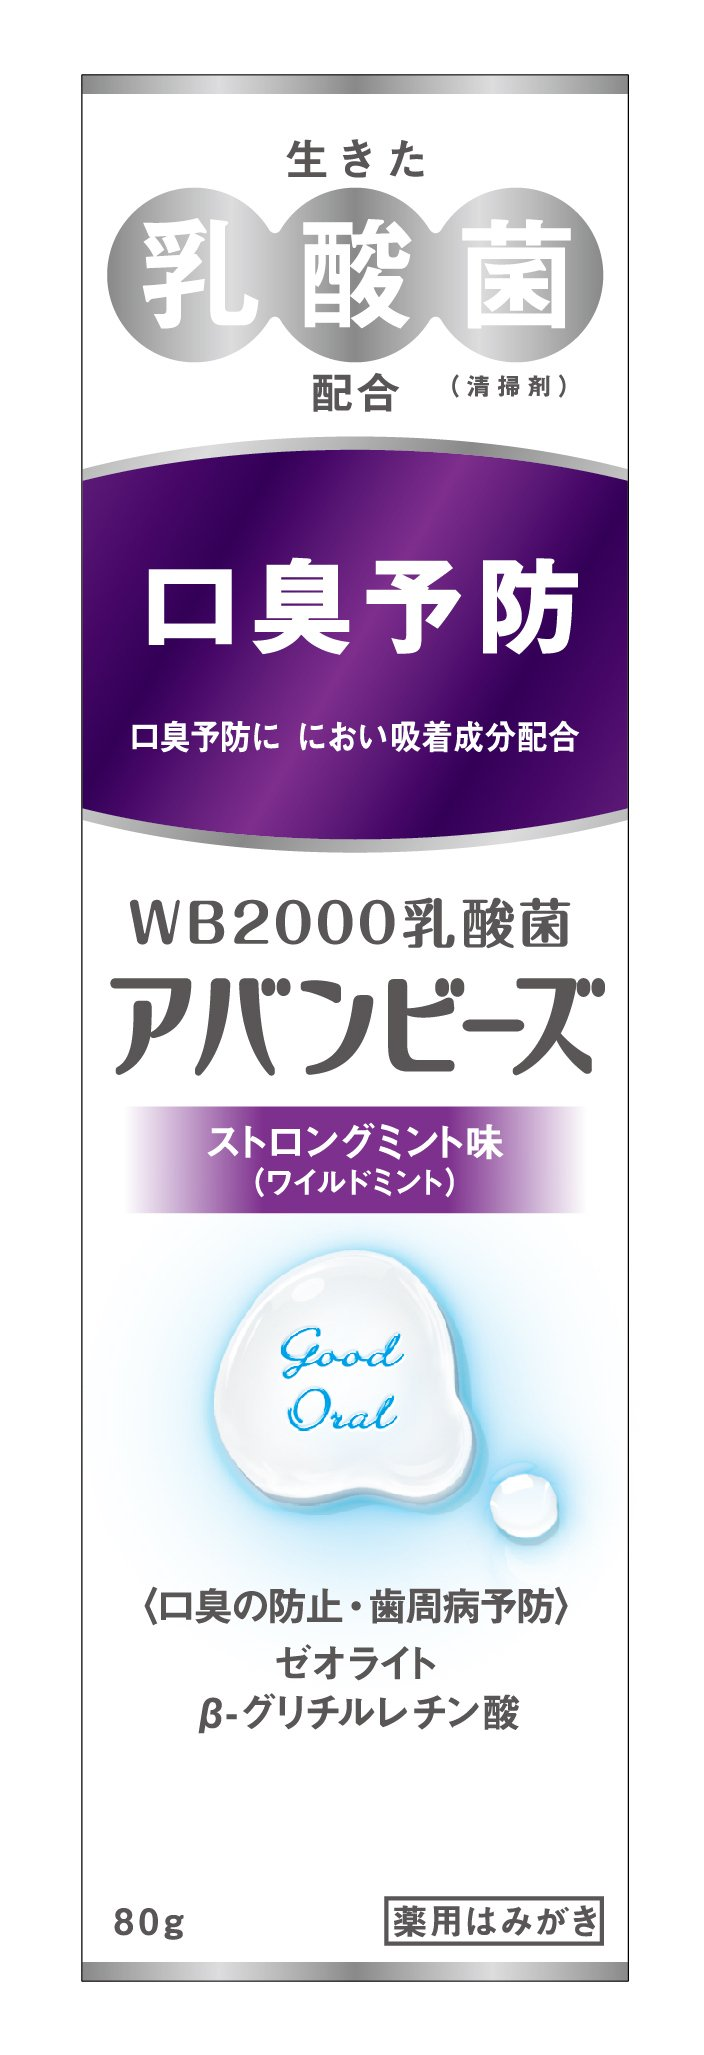 Wakamoto Pharmacy Avantbise 80g Toothpaste 1 Count Strong Mint by Avantbise